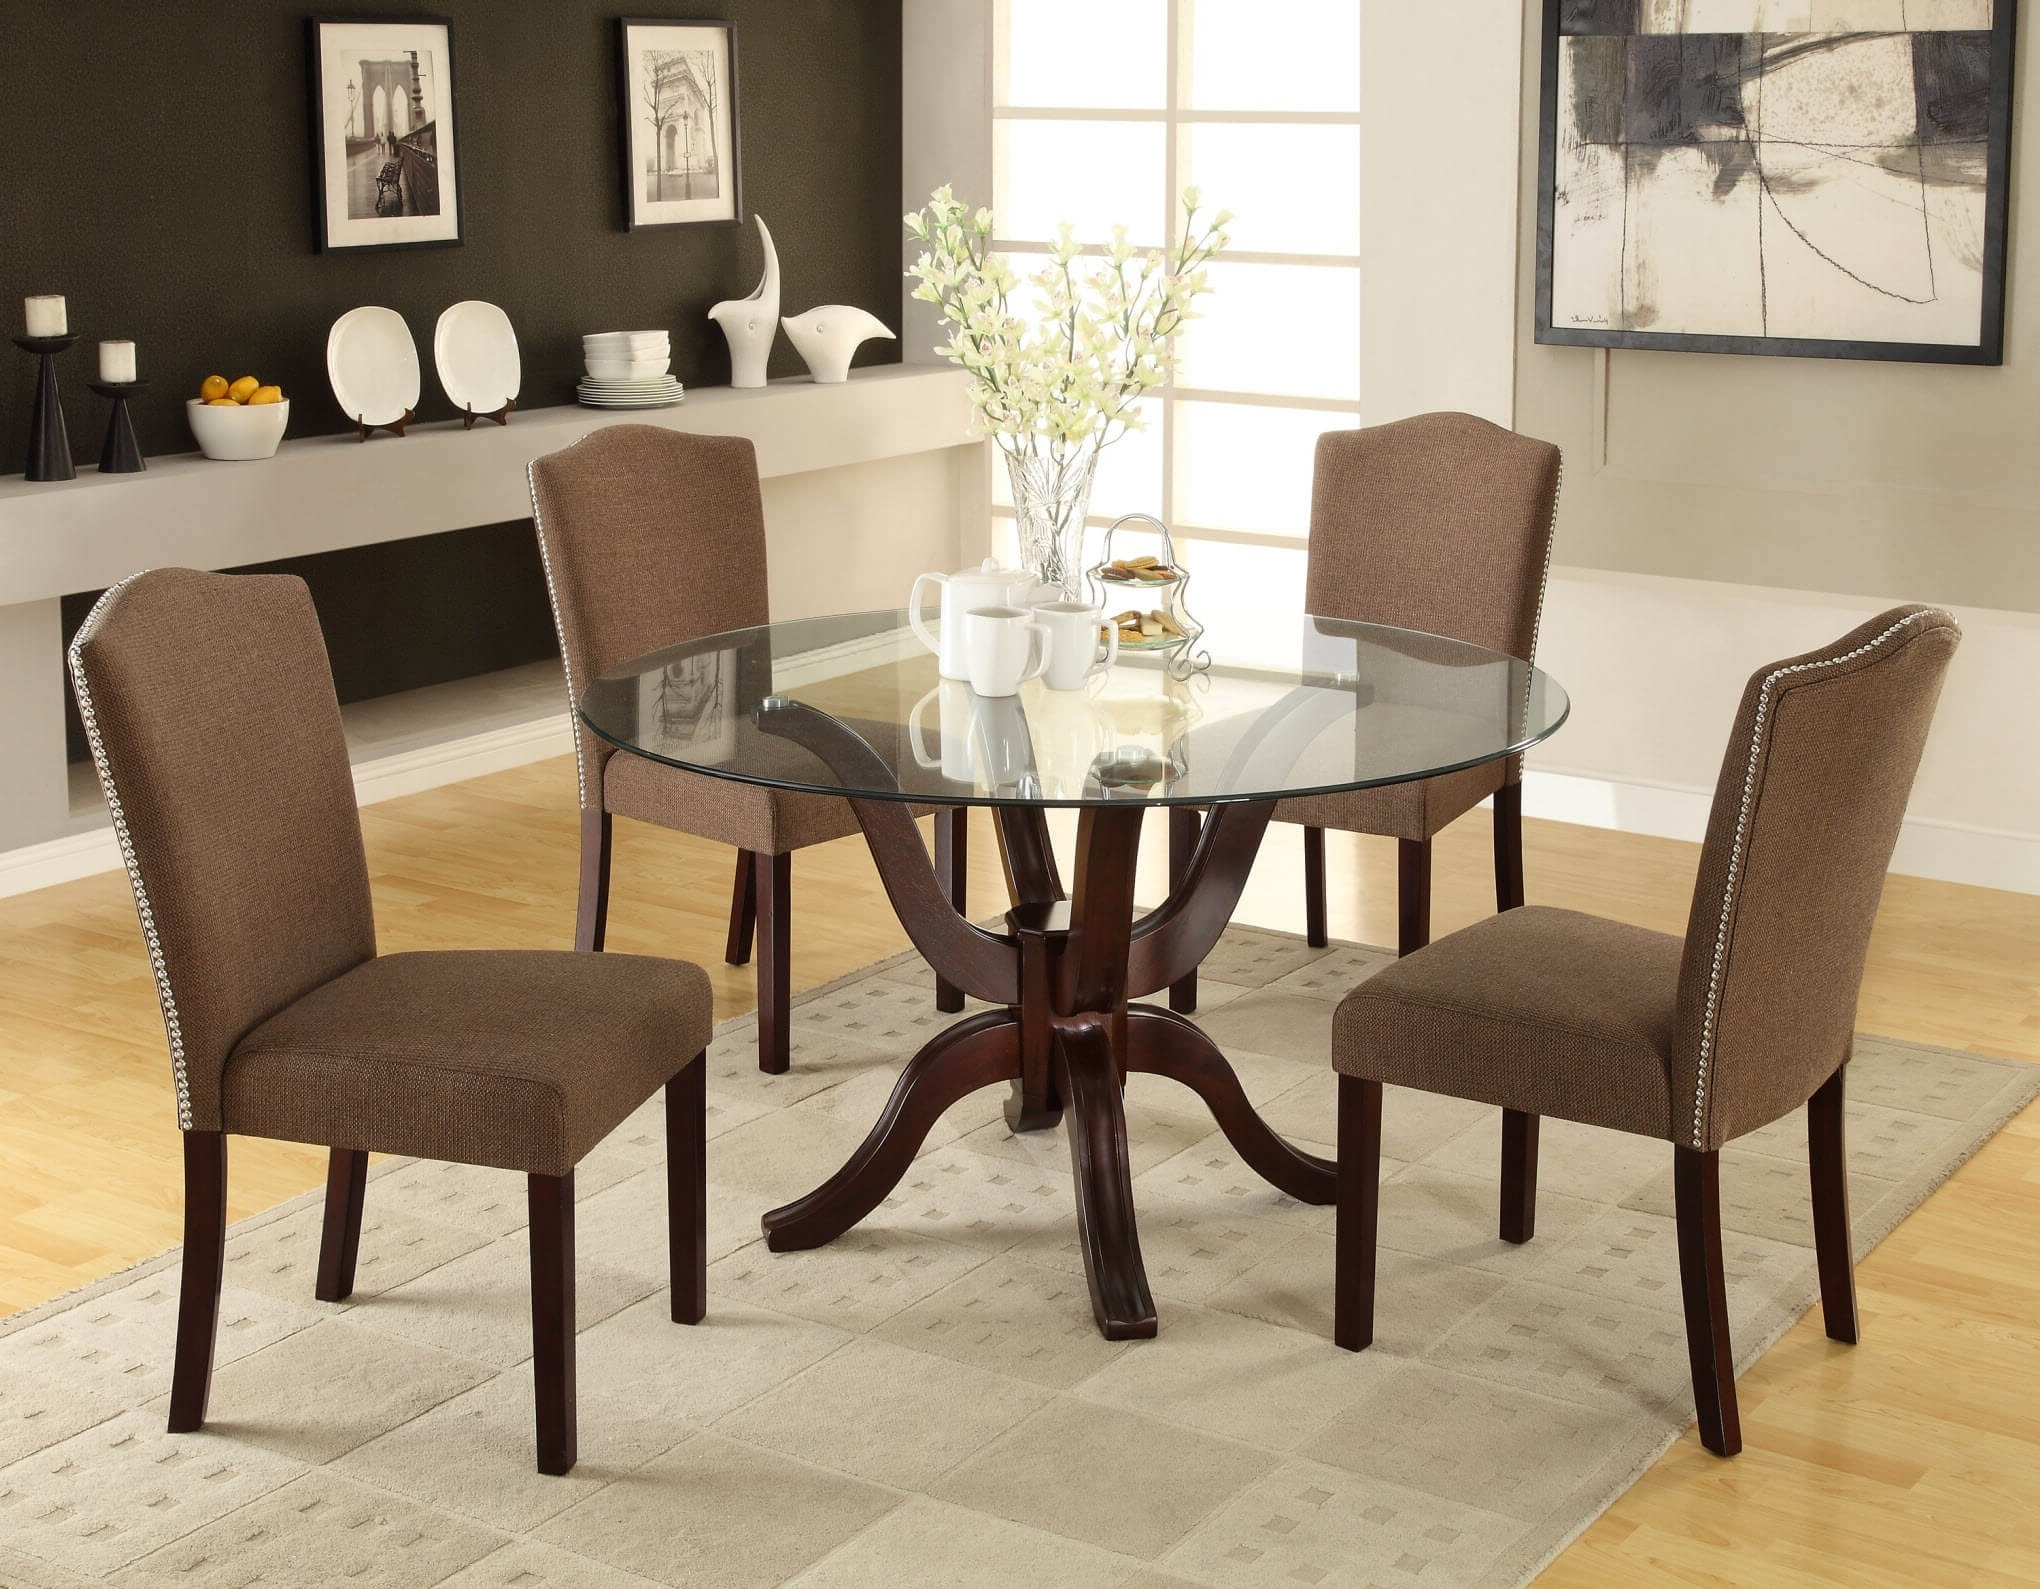 Latest Round Glass Dining Table Sets For 4 Best Of Round Glass Dining Table With Regard To Dining Room Glass Tables Sets (View 17 of 25)